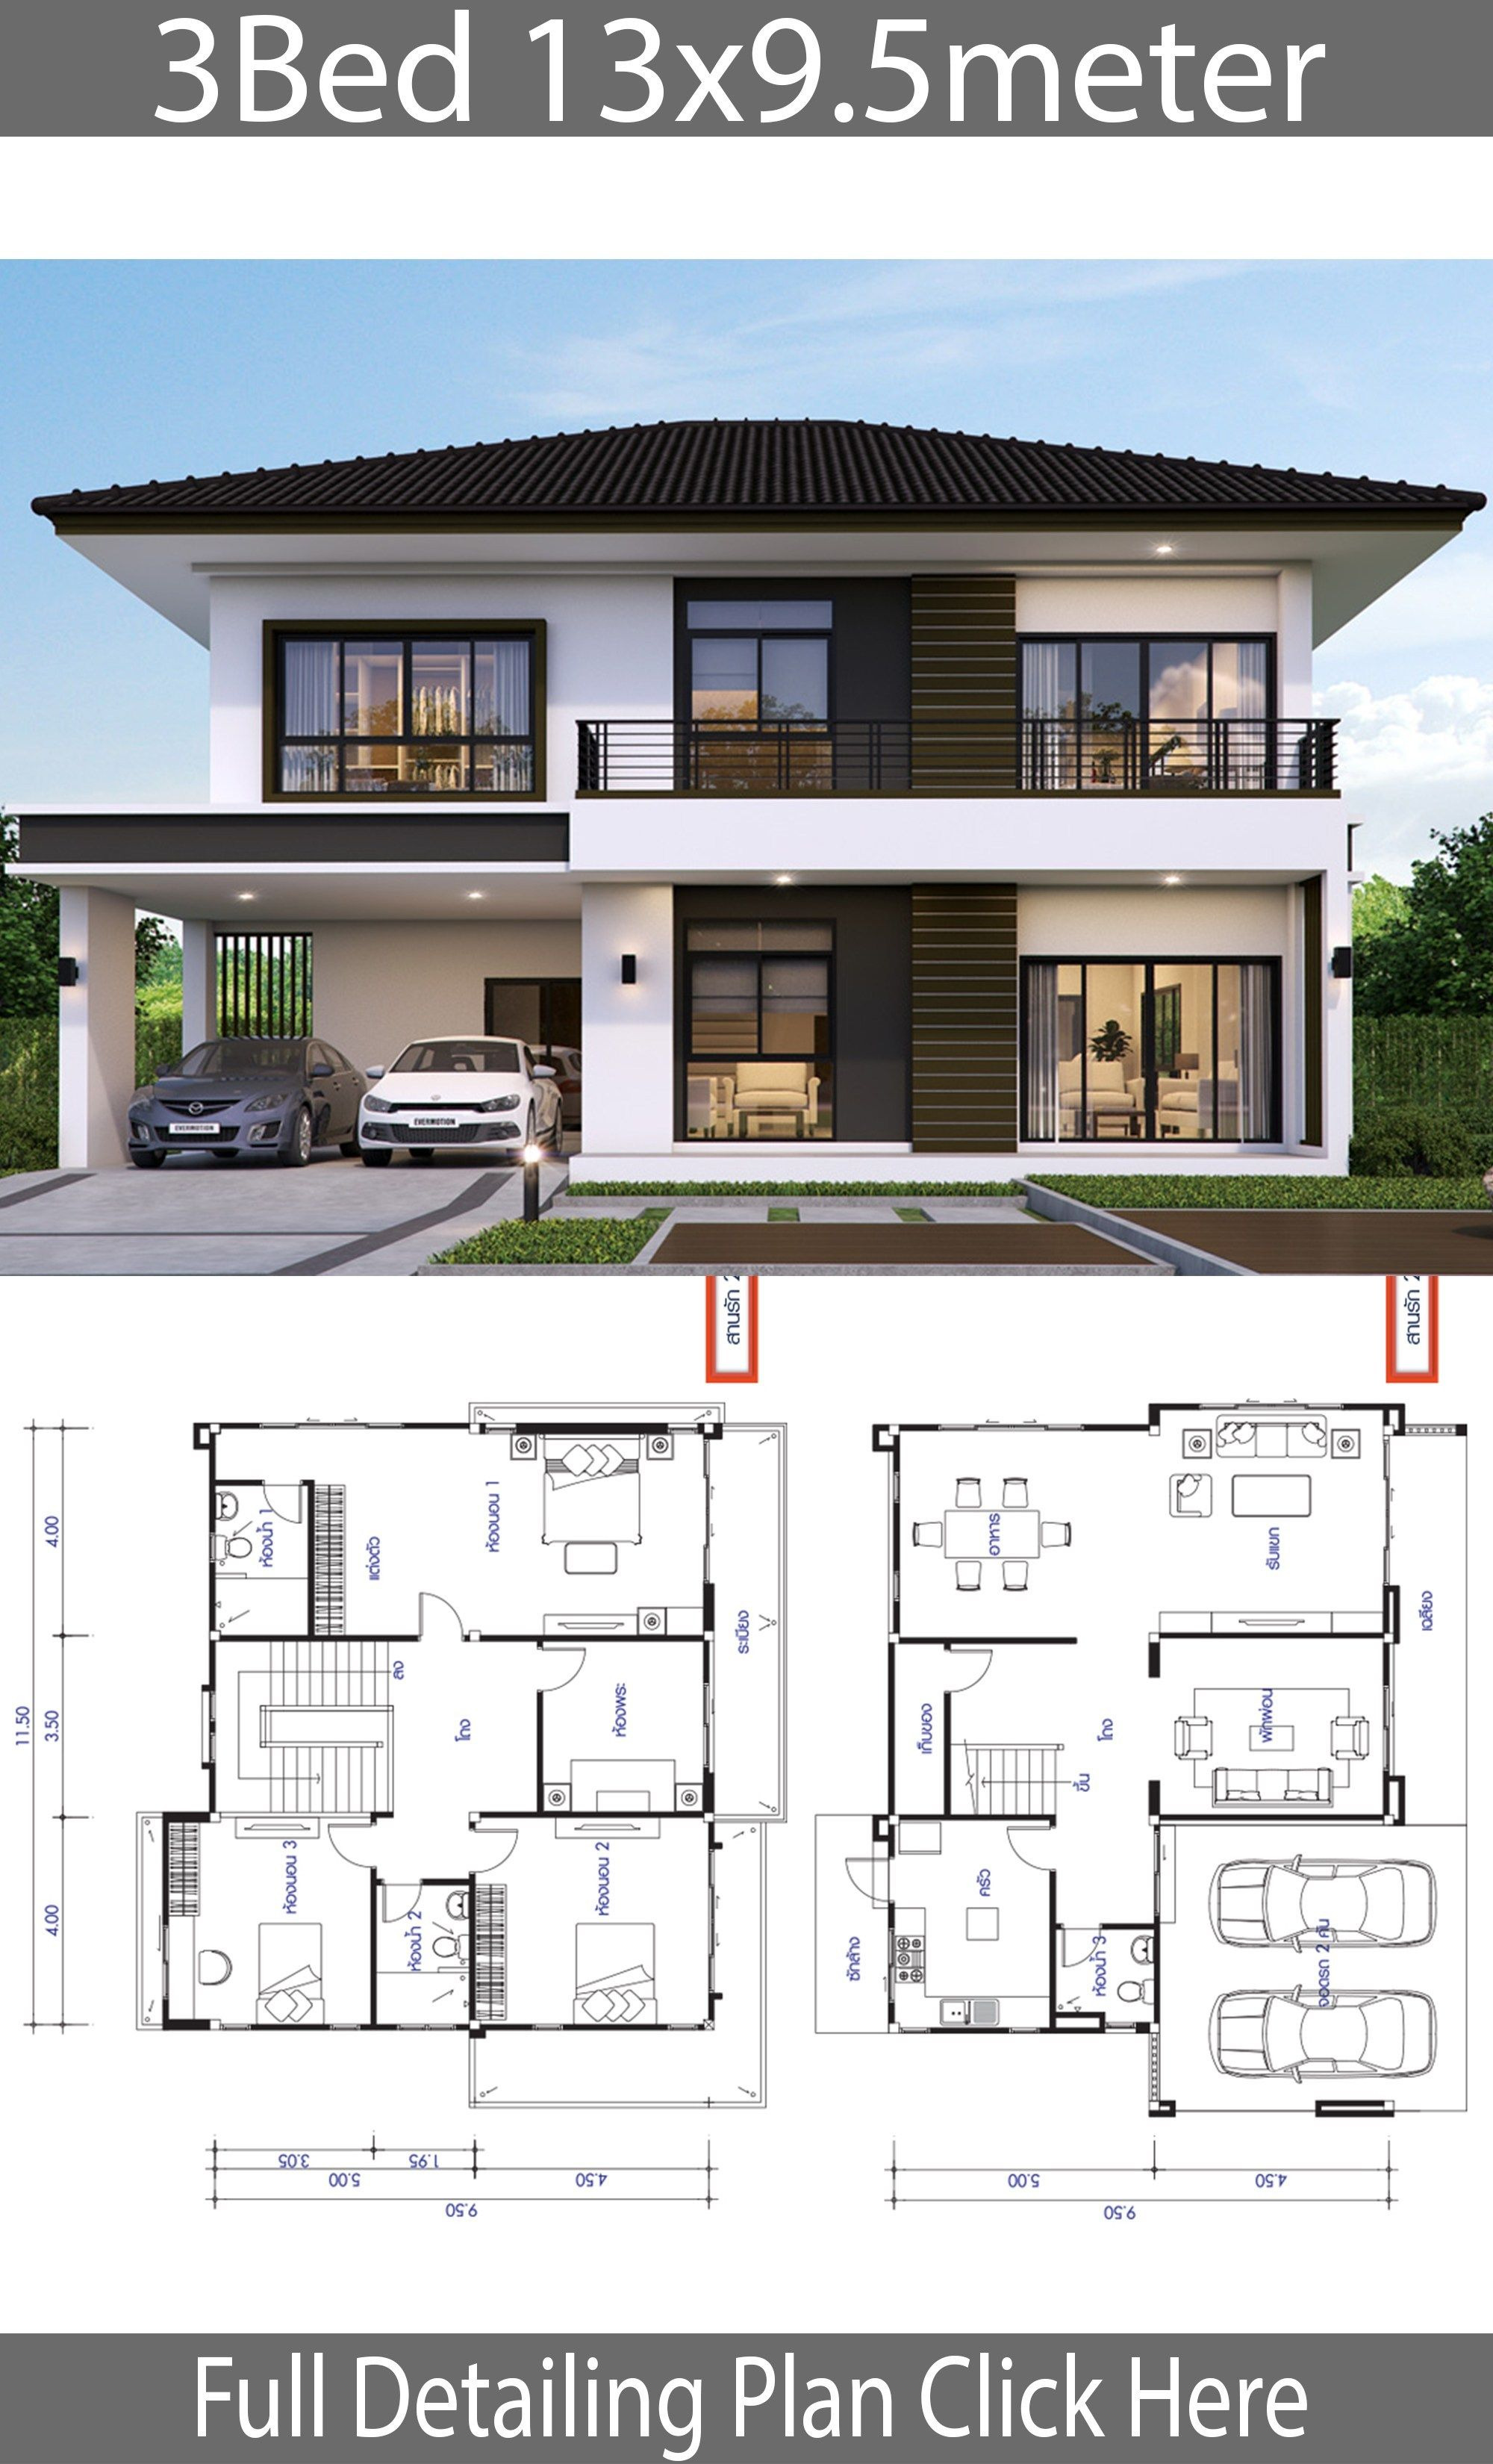 Houses Designs and Floor Plans Best Of House Design Plan 13x9 5m with 3 Bedrooms